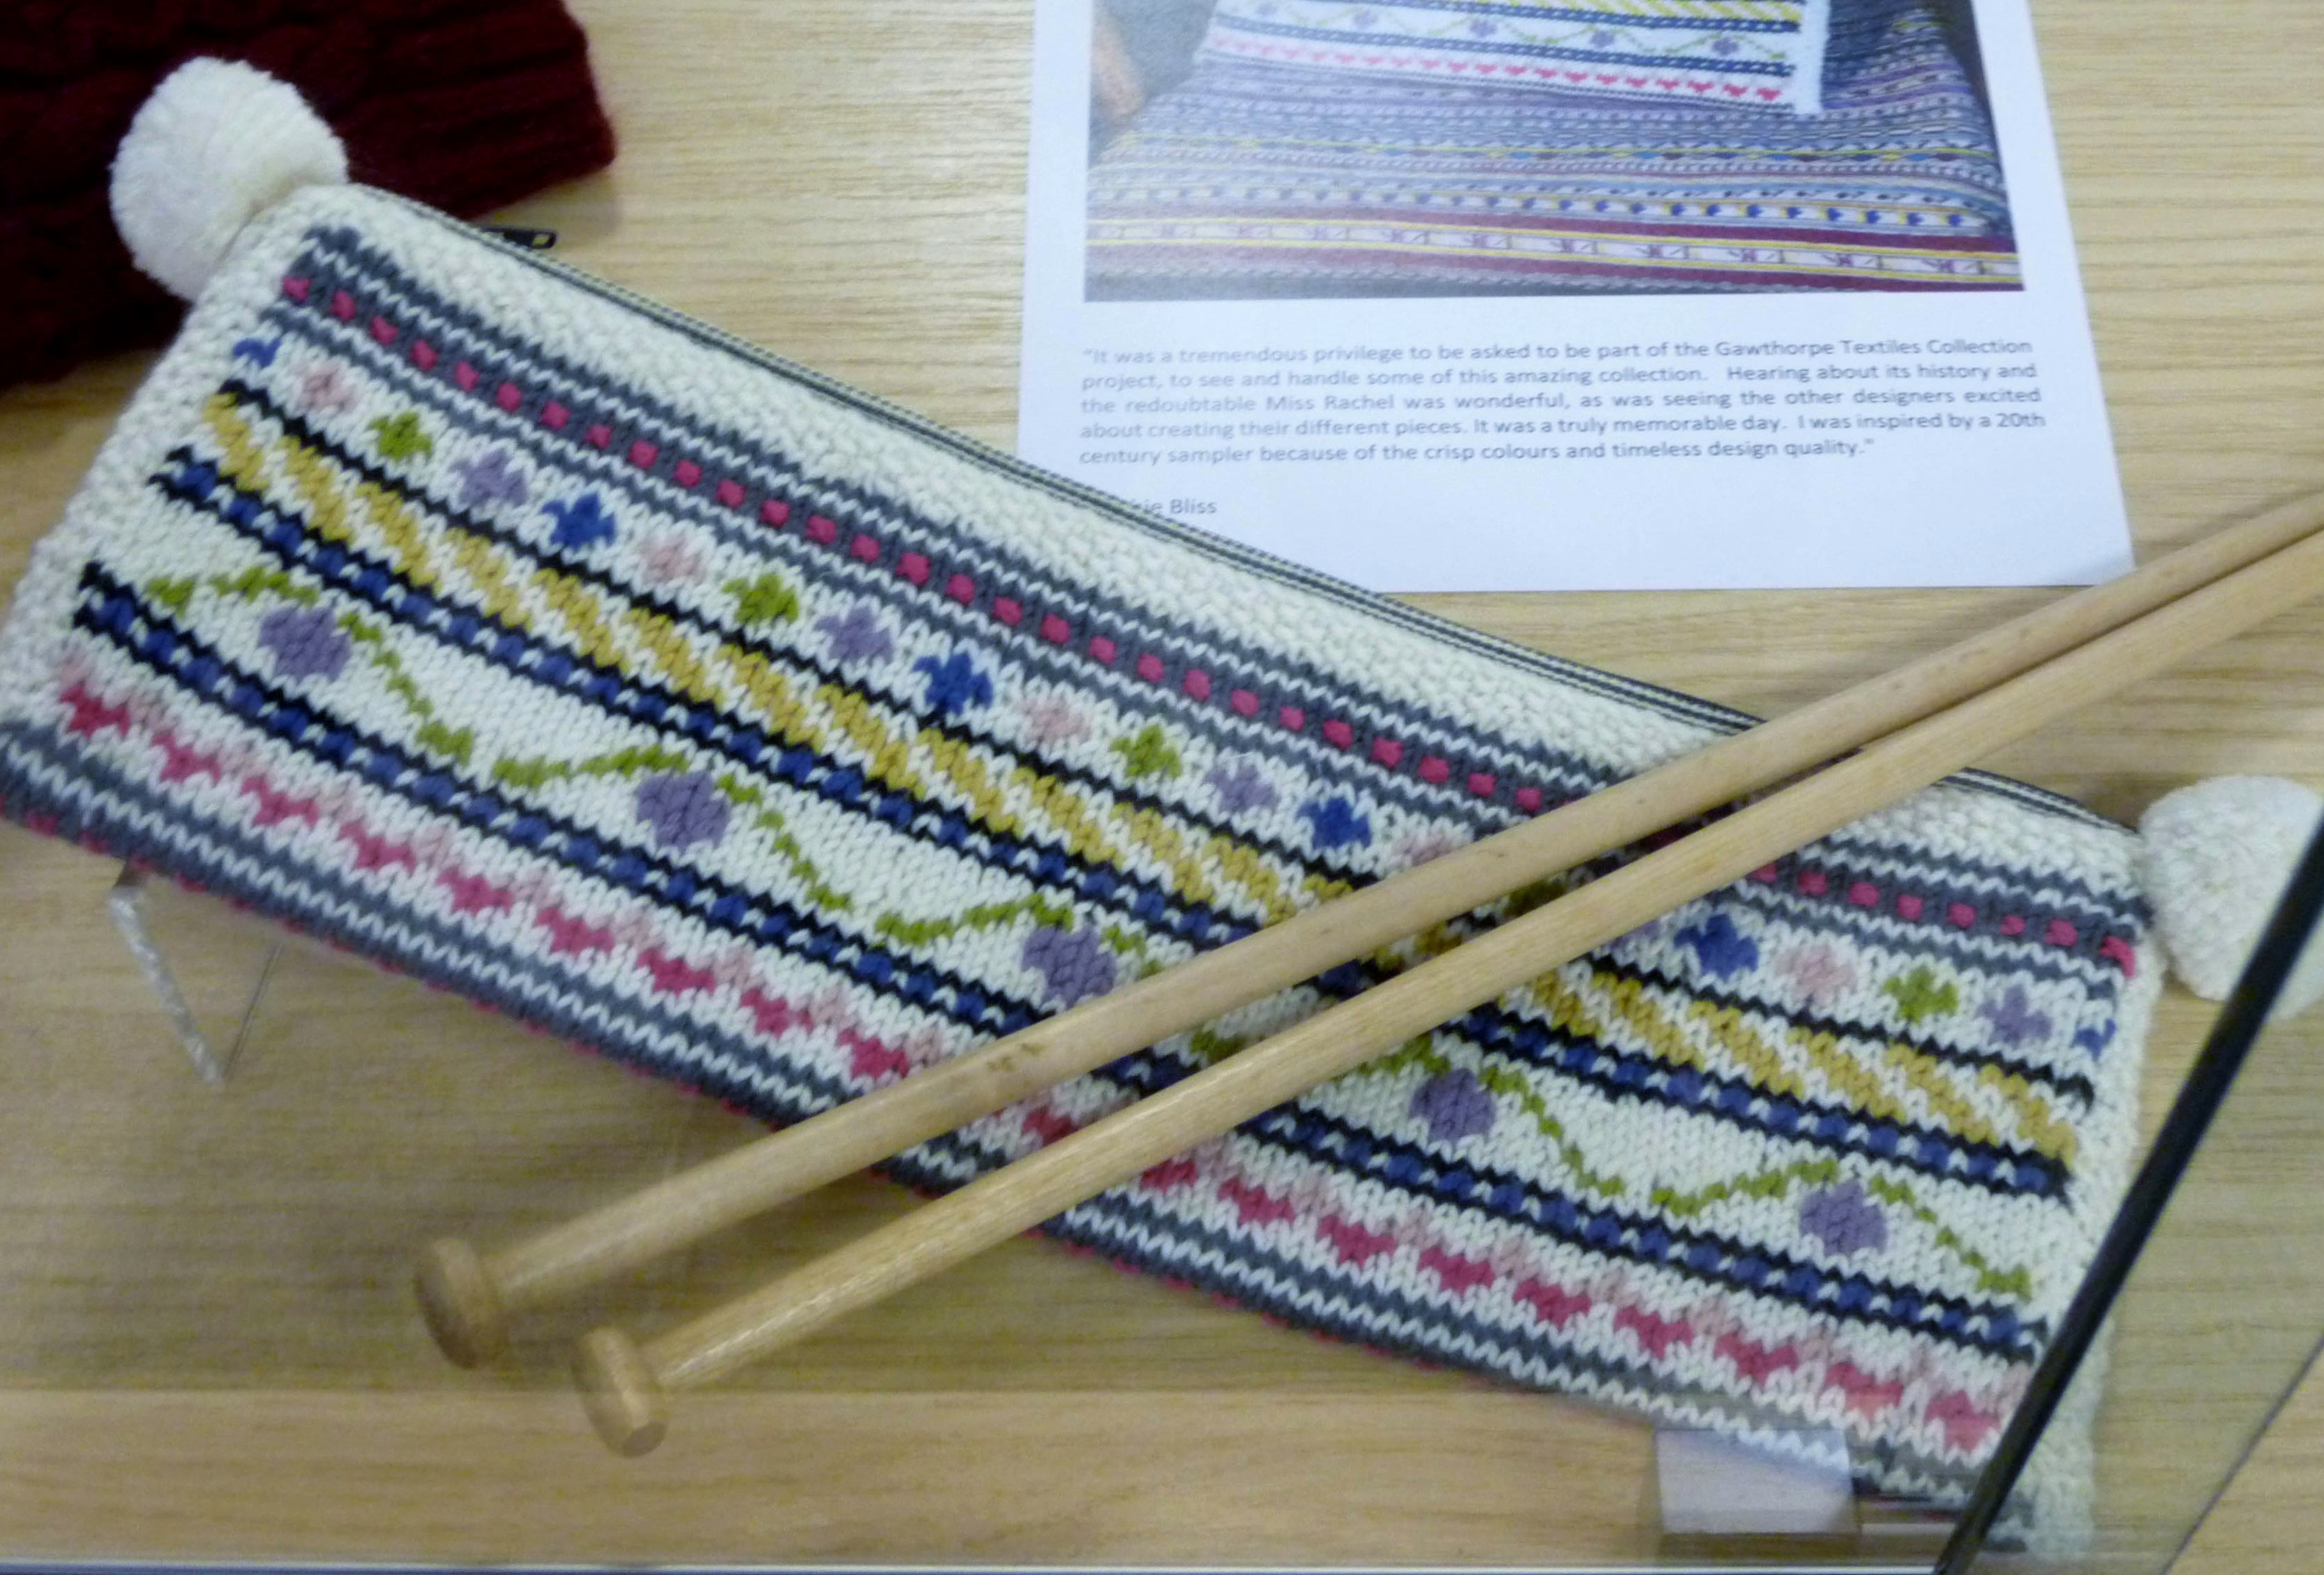 KNITTED NEEDLE CASE by Debbie Bliss, inspired by by a 20th century sampler in the Rachael Kay Shuttleworth collection in Gawthorpe Hall